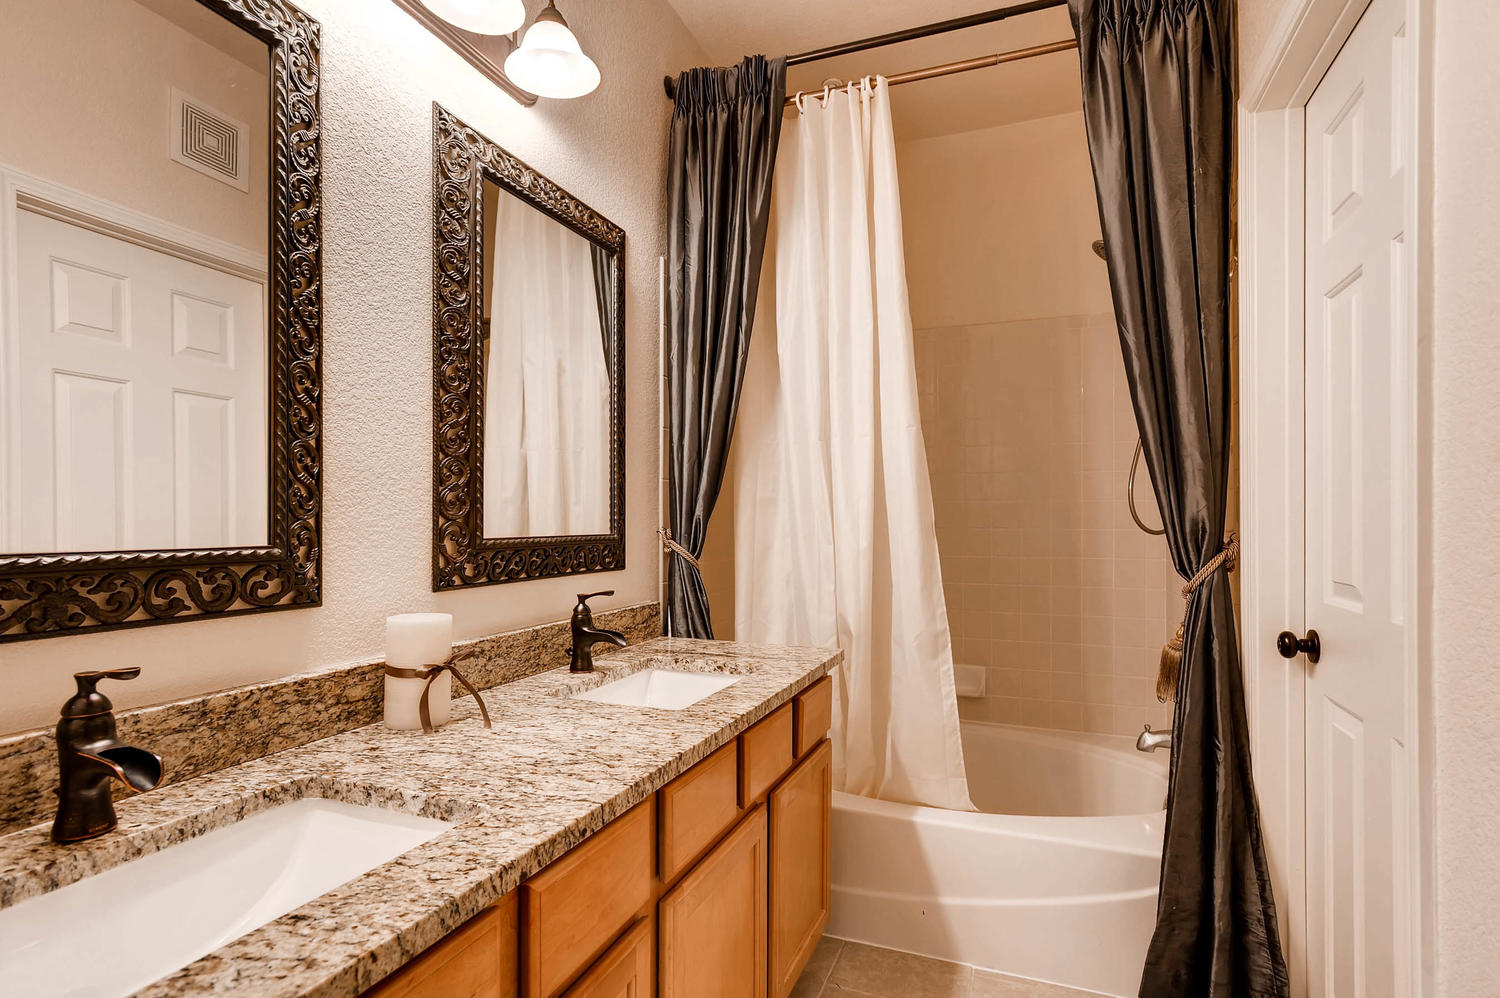 6723 S Winnipeg Cir Unit 102-large-018-21-Master Bathroom-1500x998-72dpi.jpg